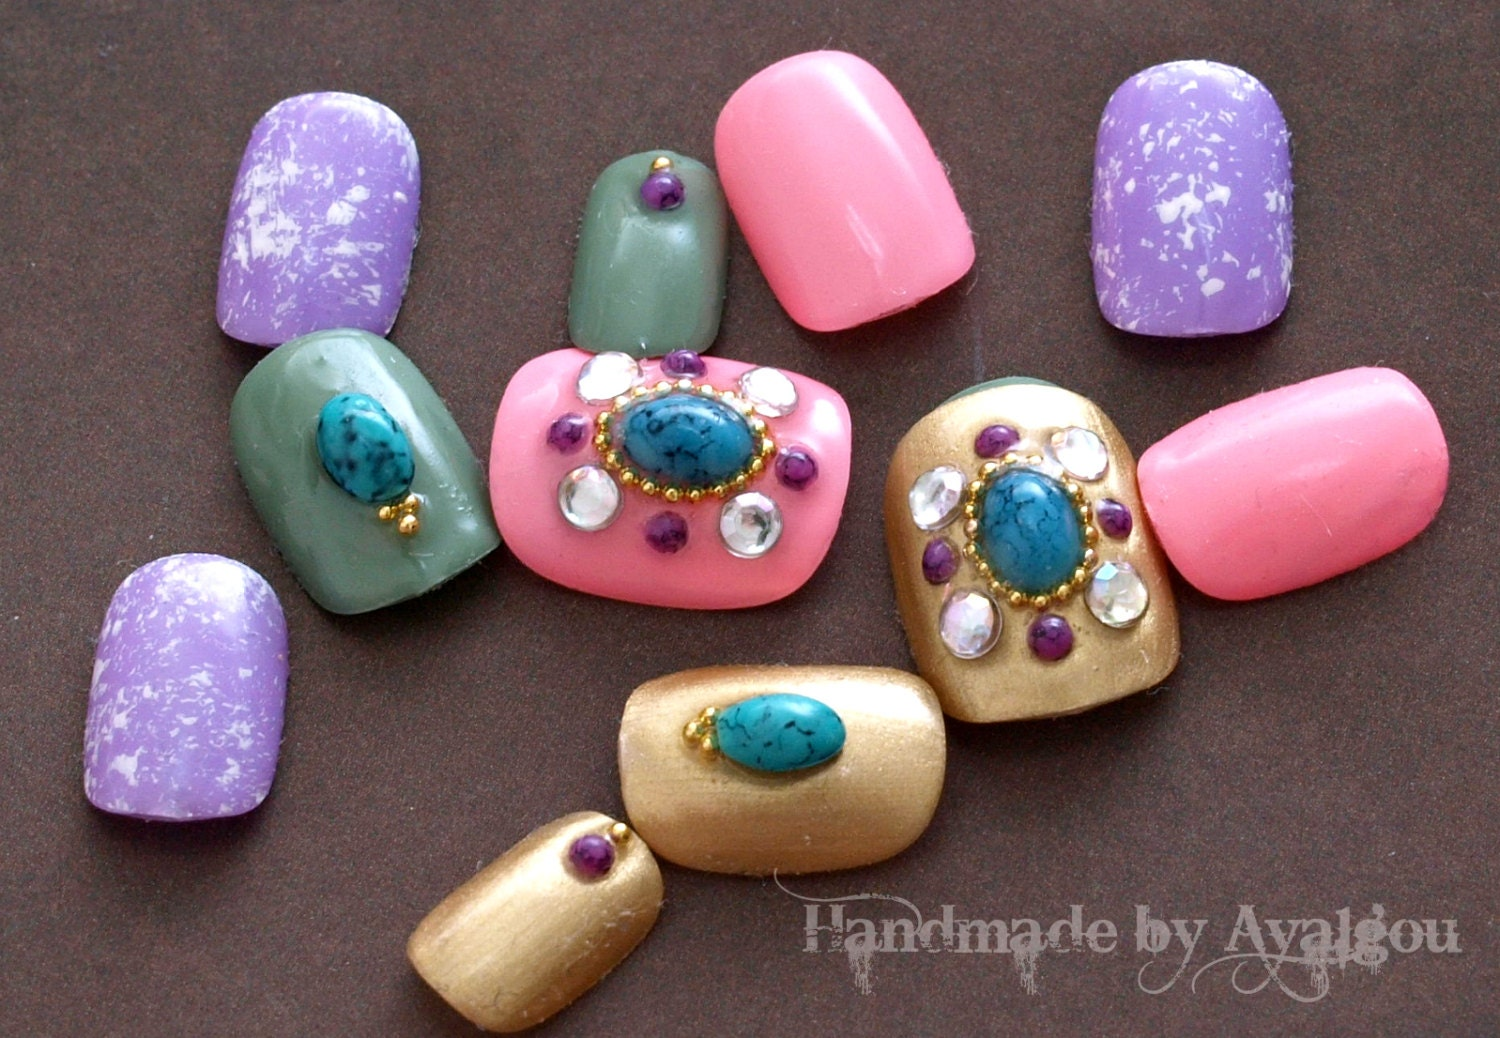 Japanese nail art fake nails acrylic nails gel nails